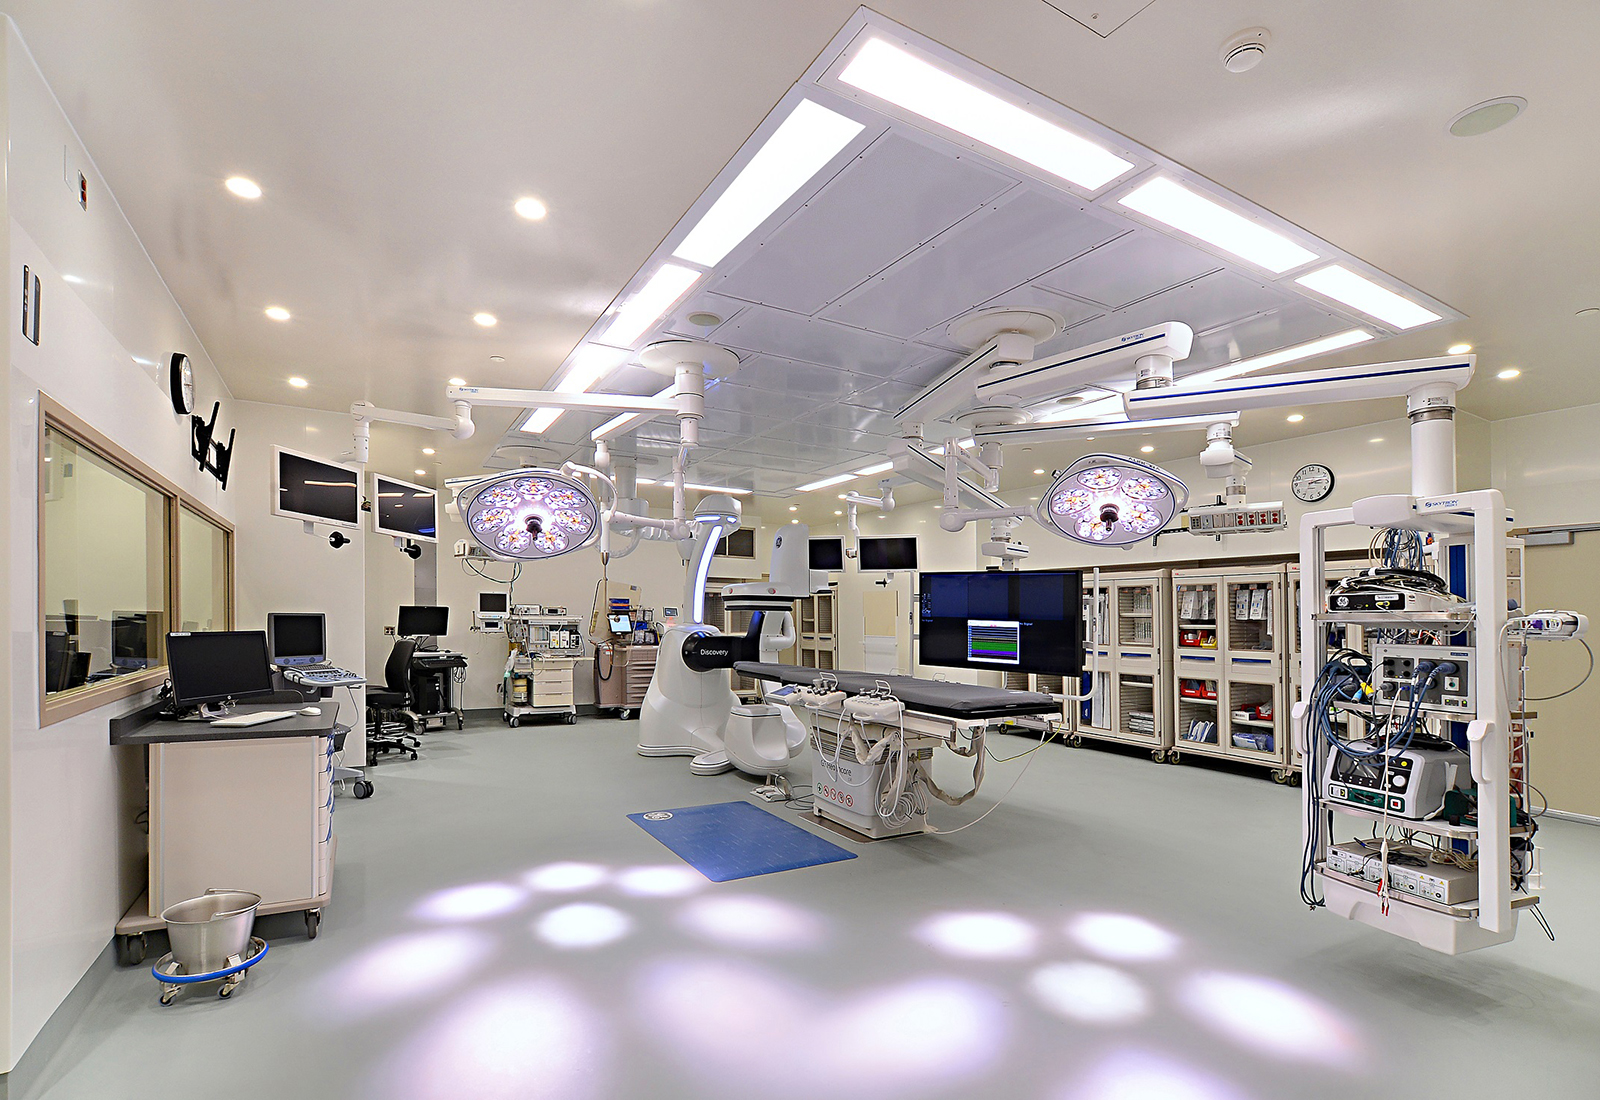 Ellis Medicine - A2 Center for Surgical and Interventional Medicine Constructor Project